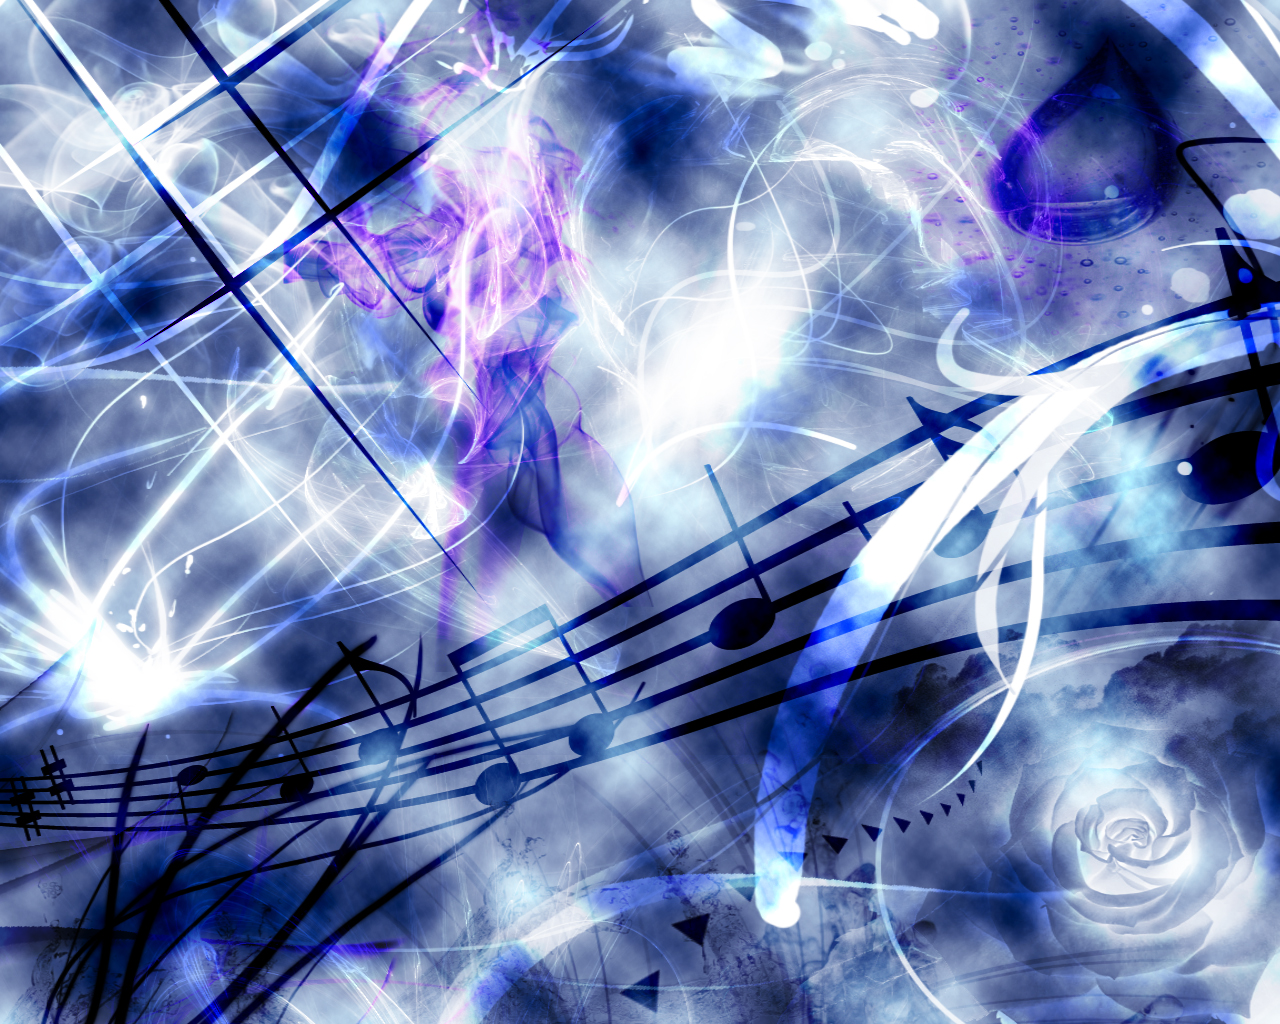 Abstract Computer Wallpapers Desktop Backgrounds 1280x1024